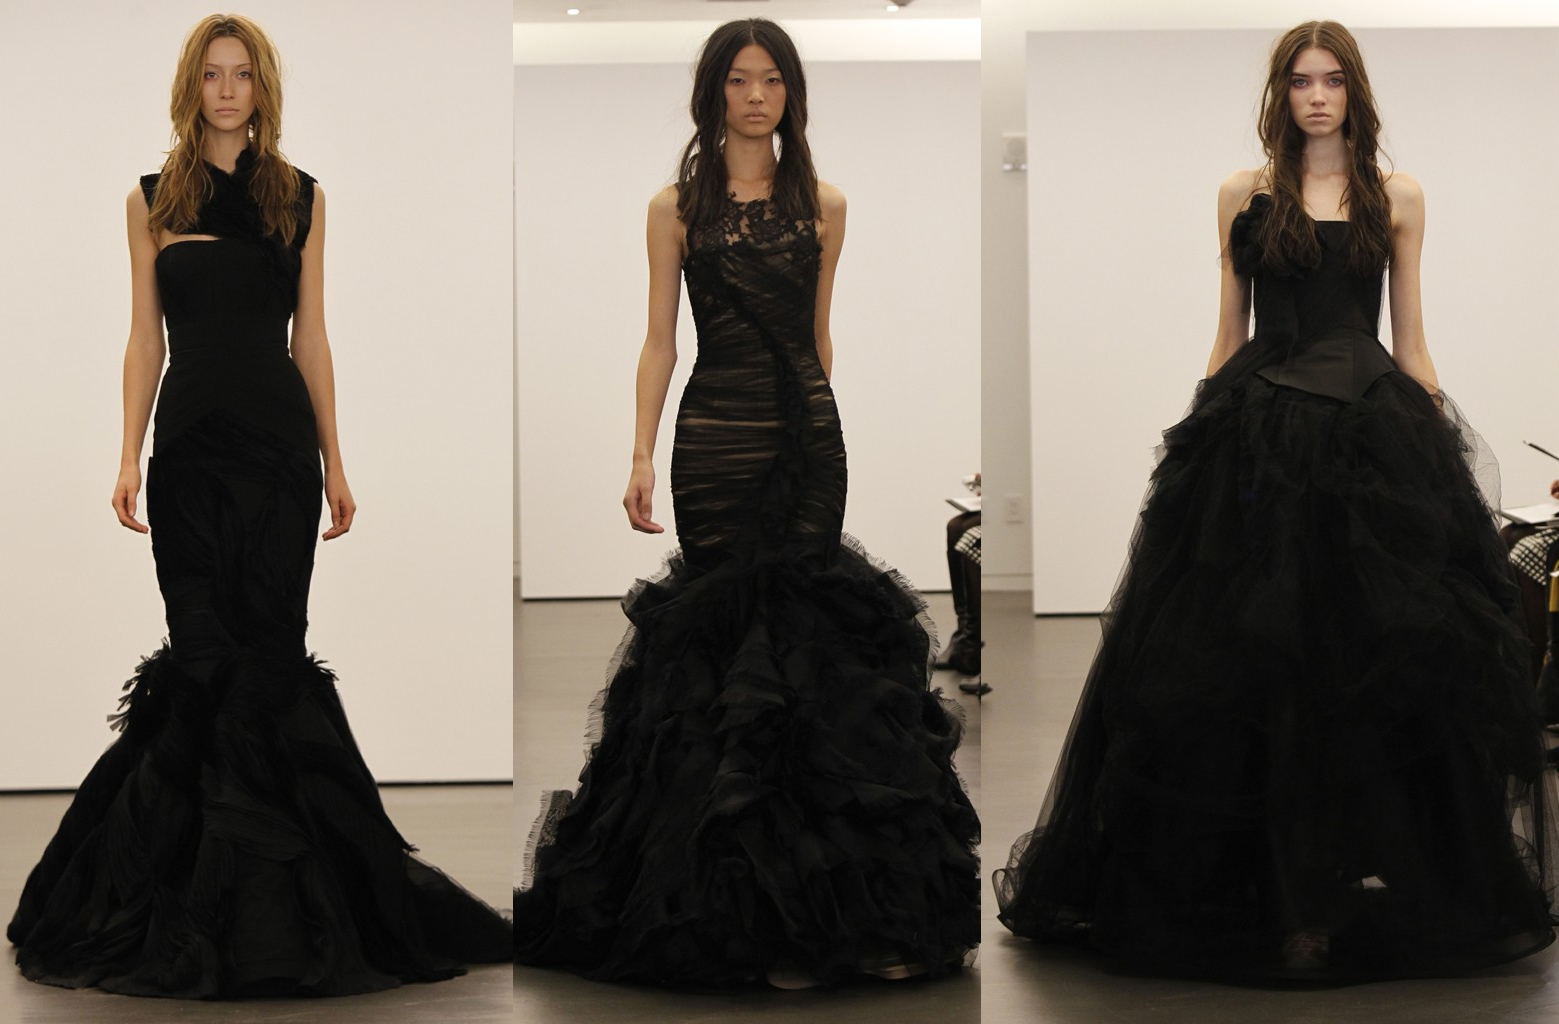 Vera Wang 39 S Black Wedding Dresses That Made Their Debut This Season